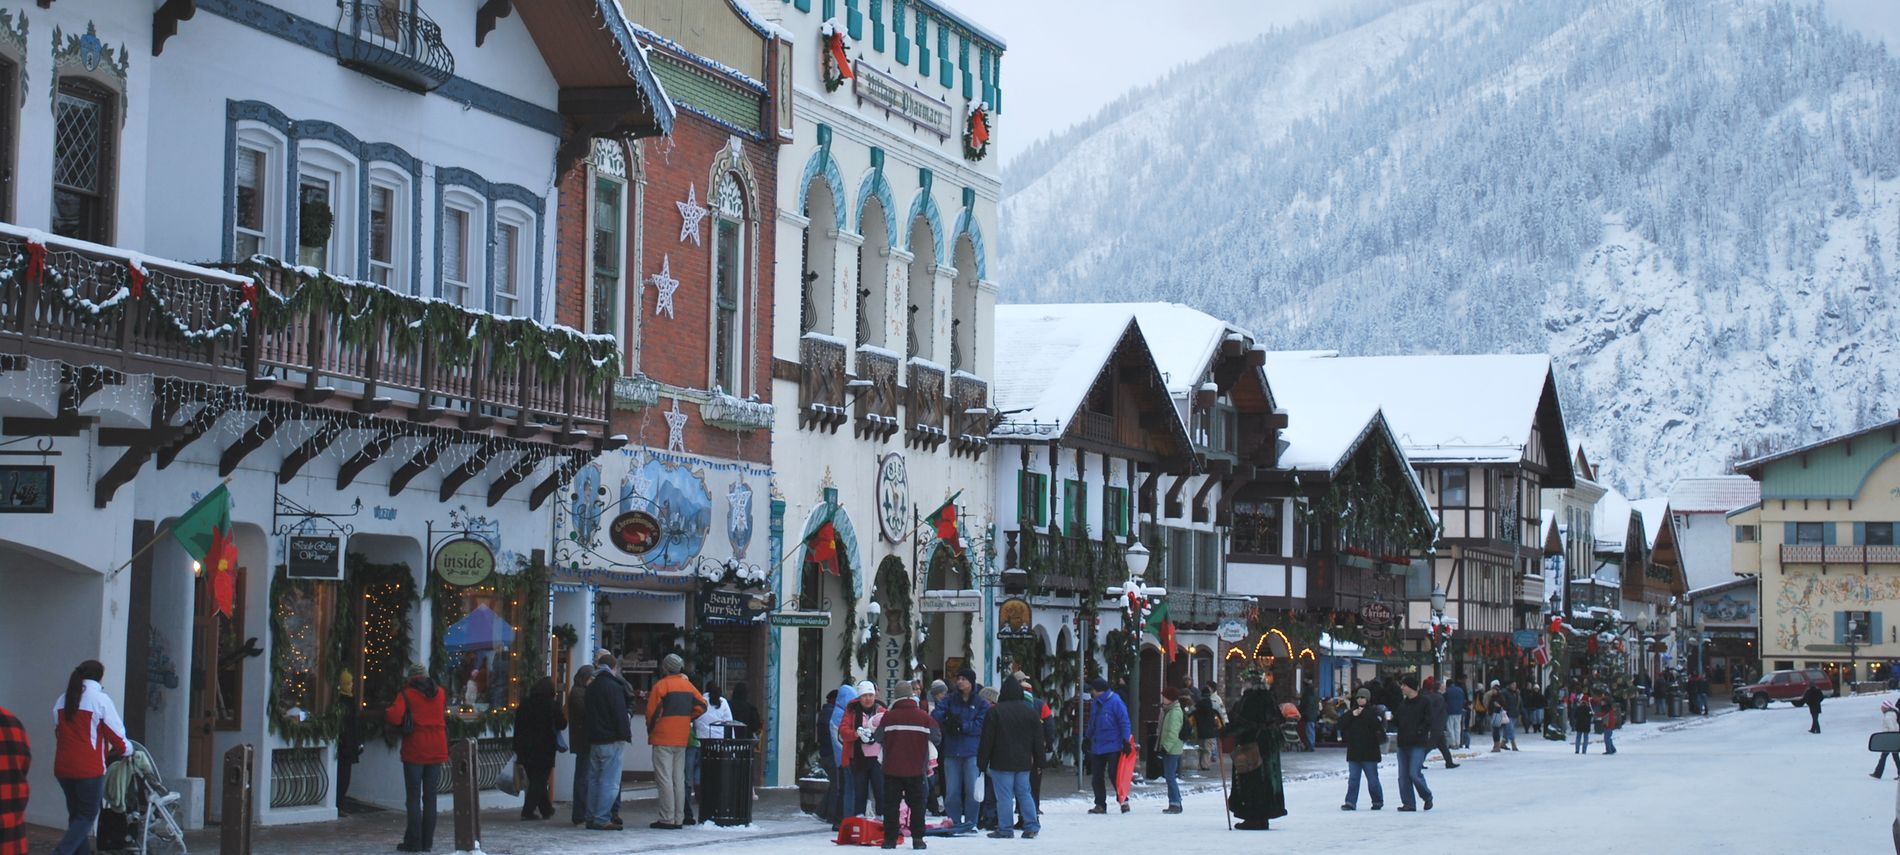 Exterior winter view of downtown Leavenworth showing white snow Christmas decorations.